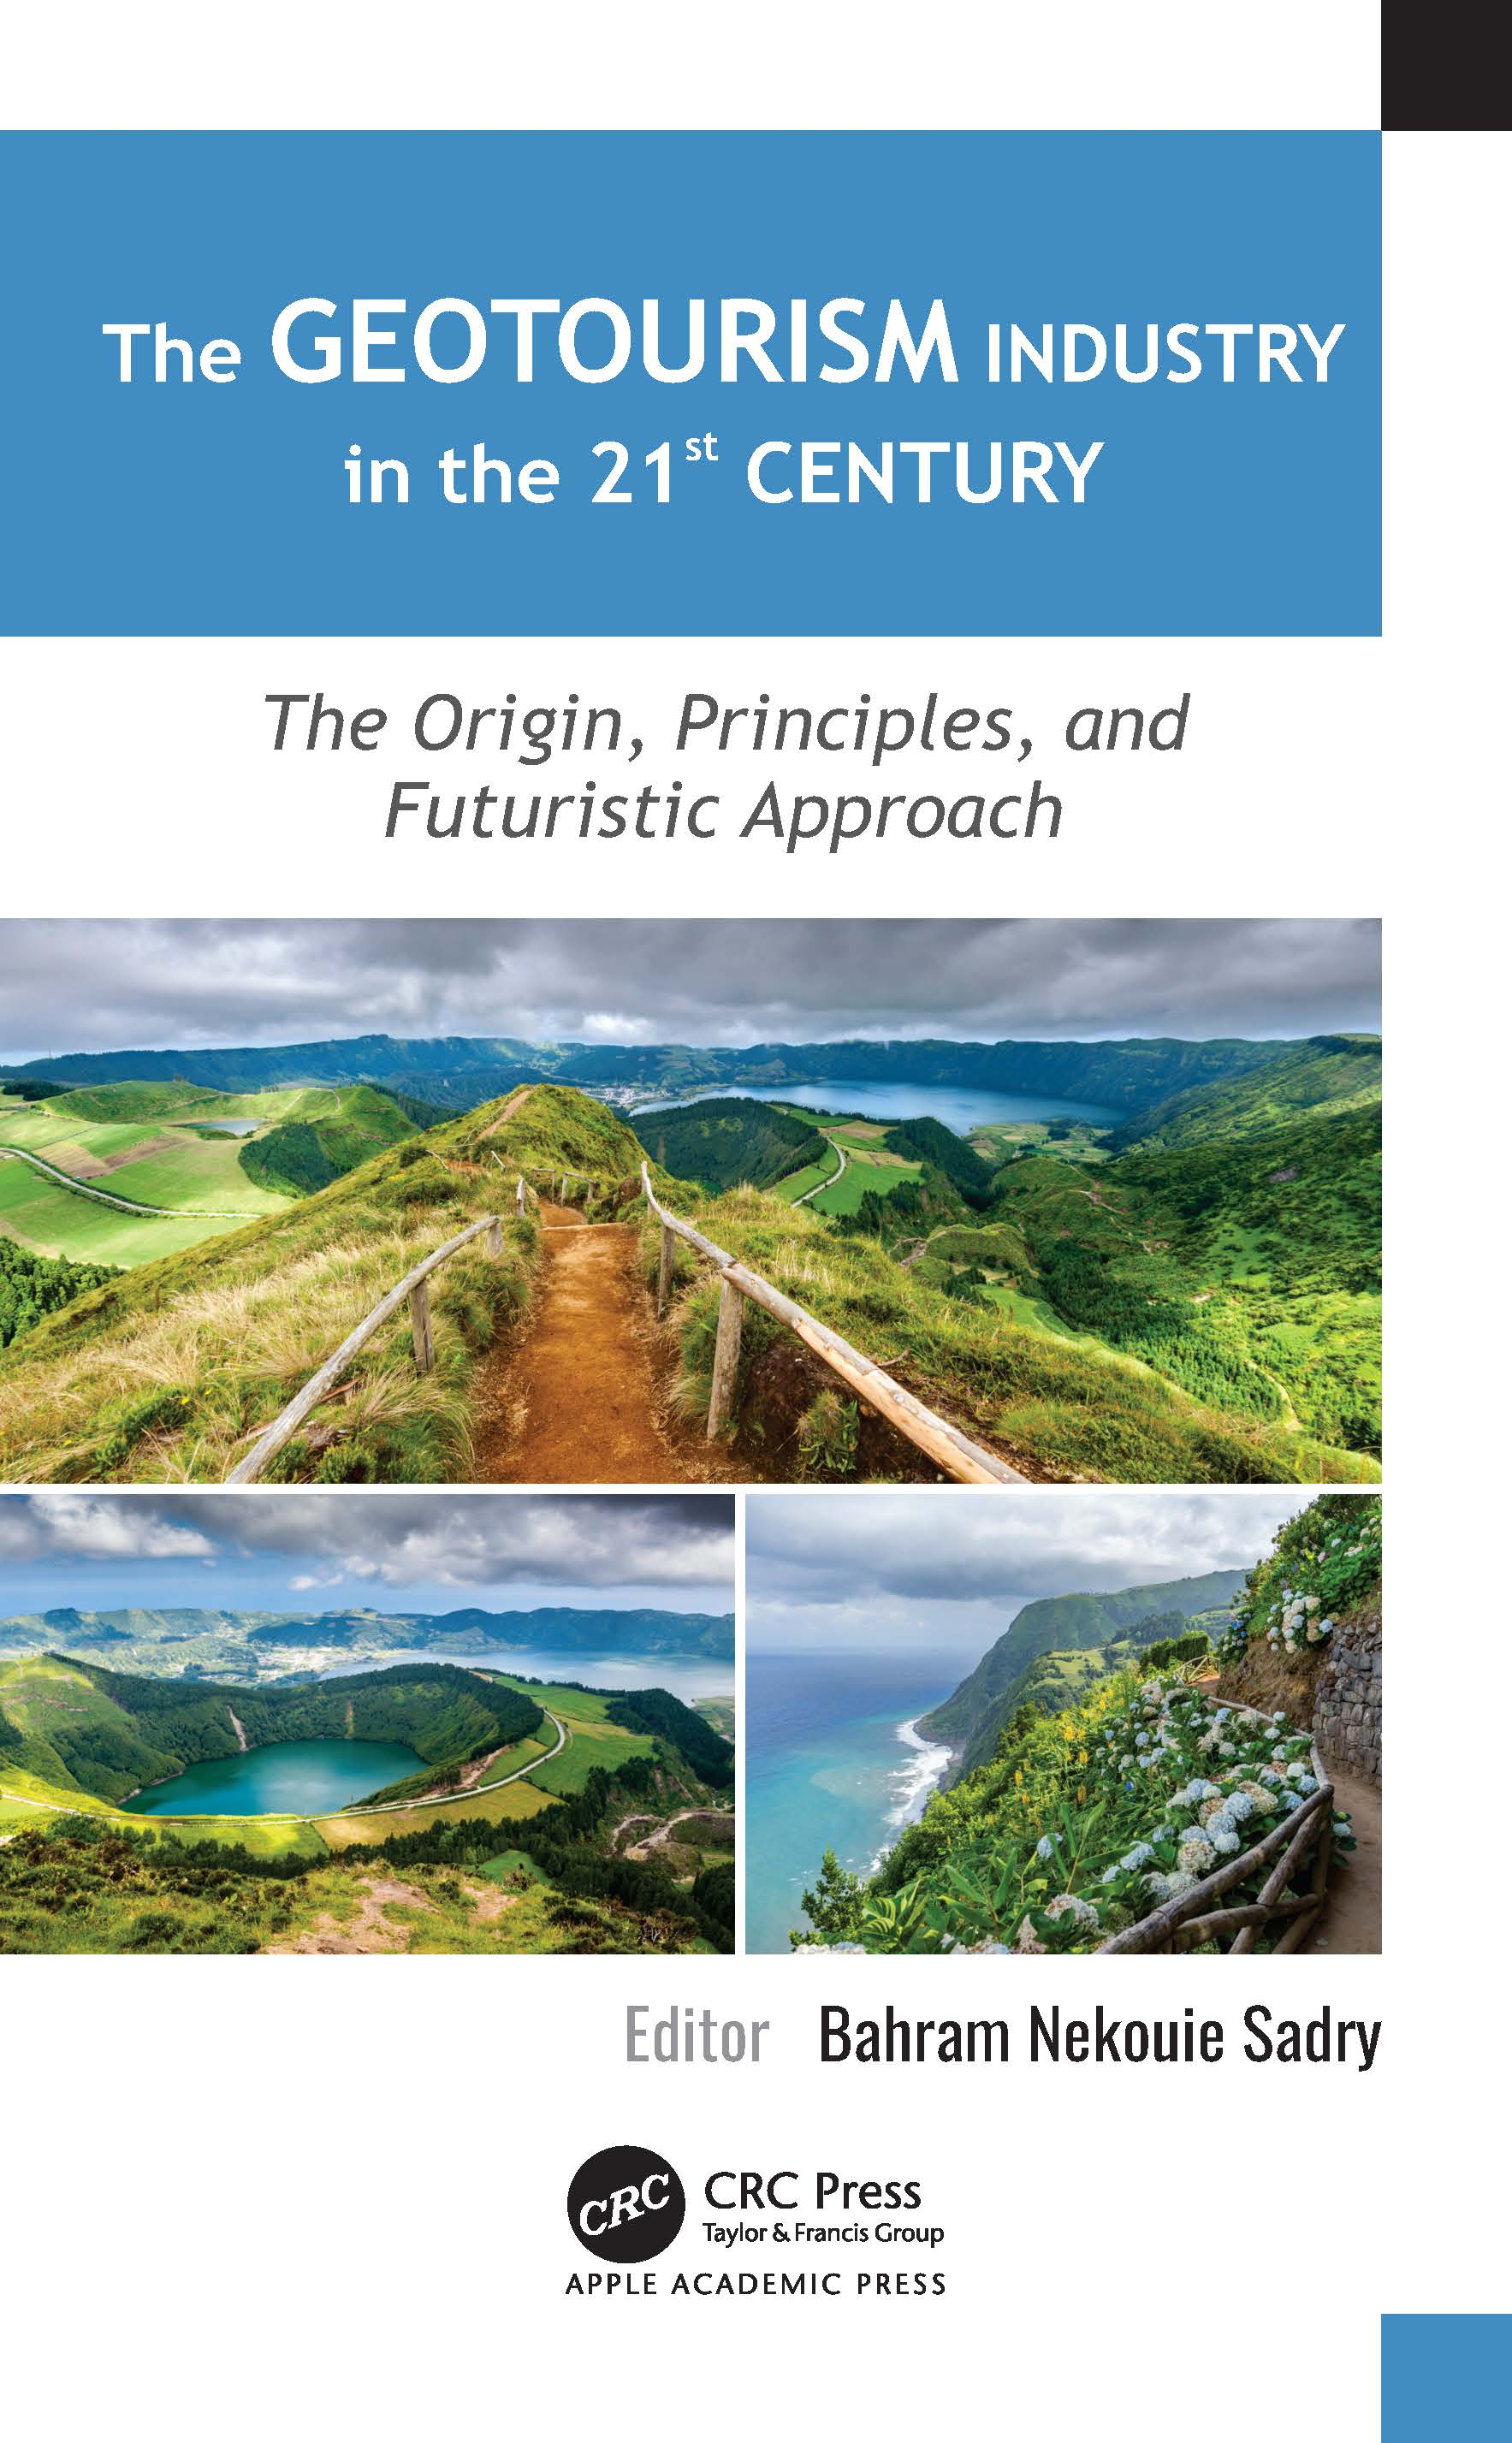 The Geotourism Industry in the 21st Century: The Origin, Principles, and Futuristic Approach book cover